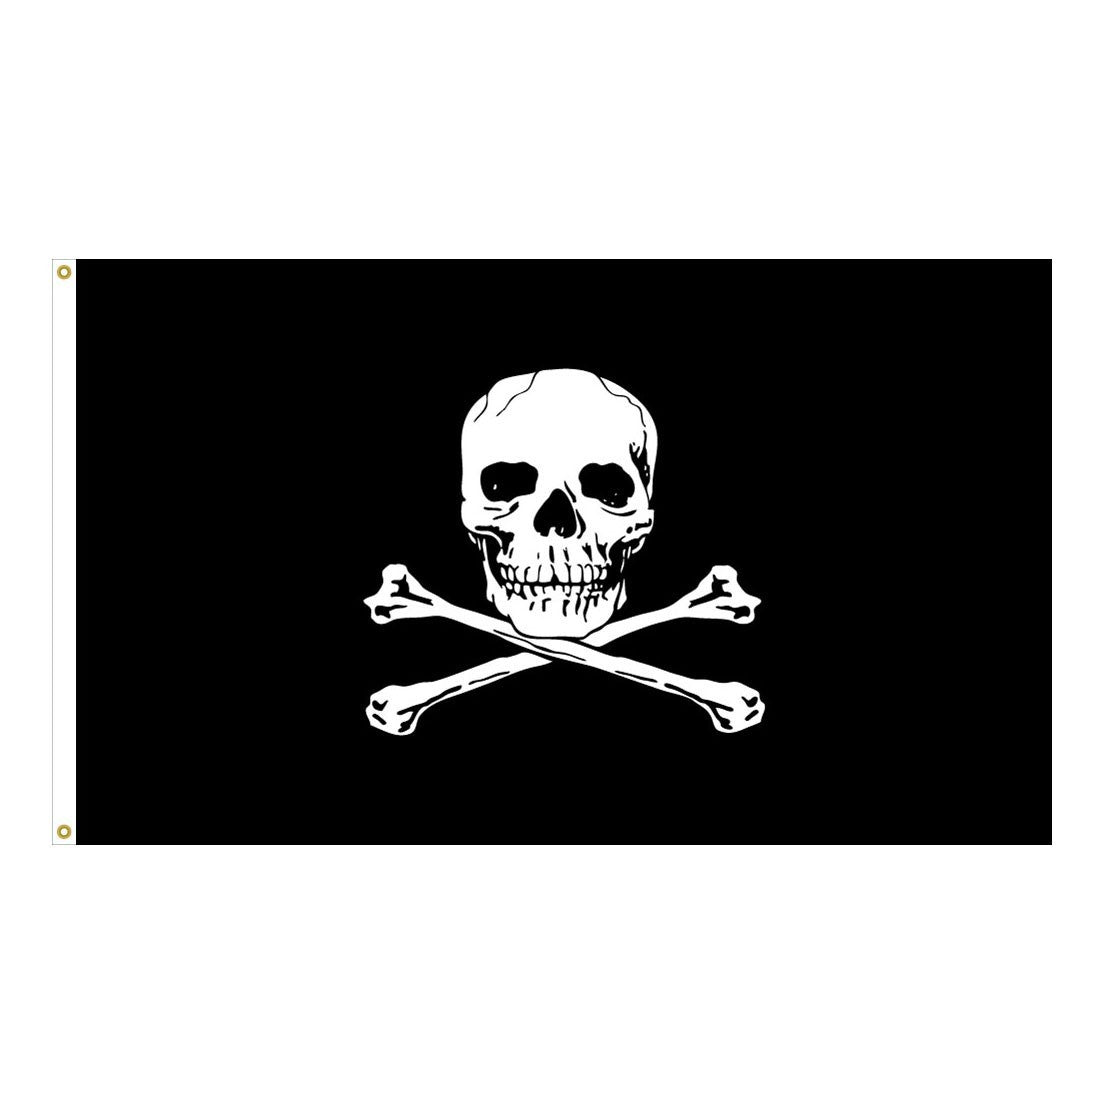 Jolly roger pirate flags for sale